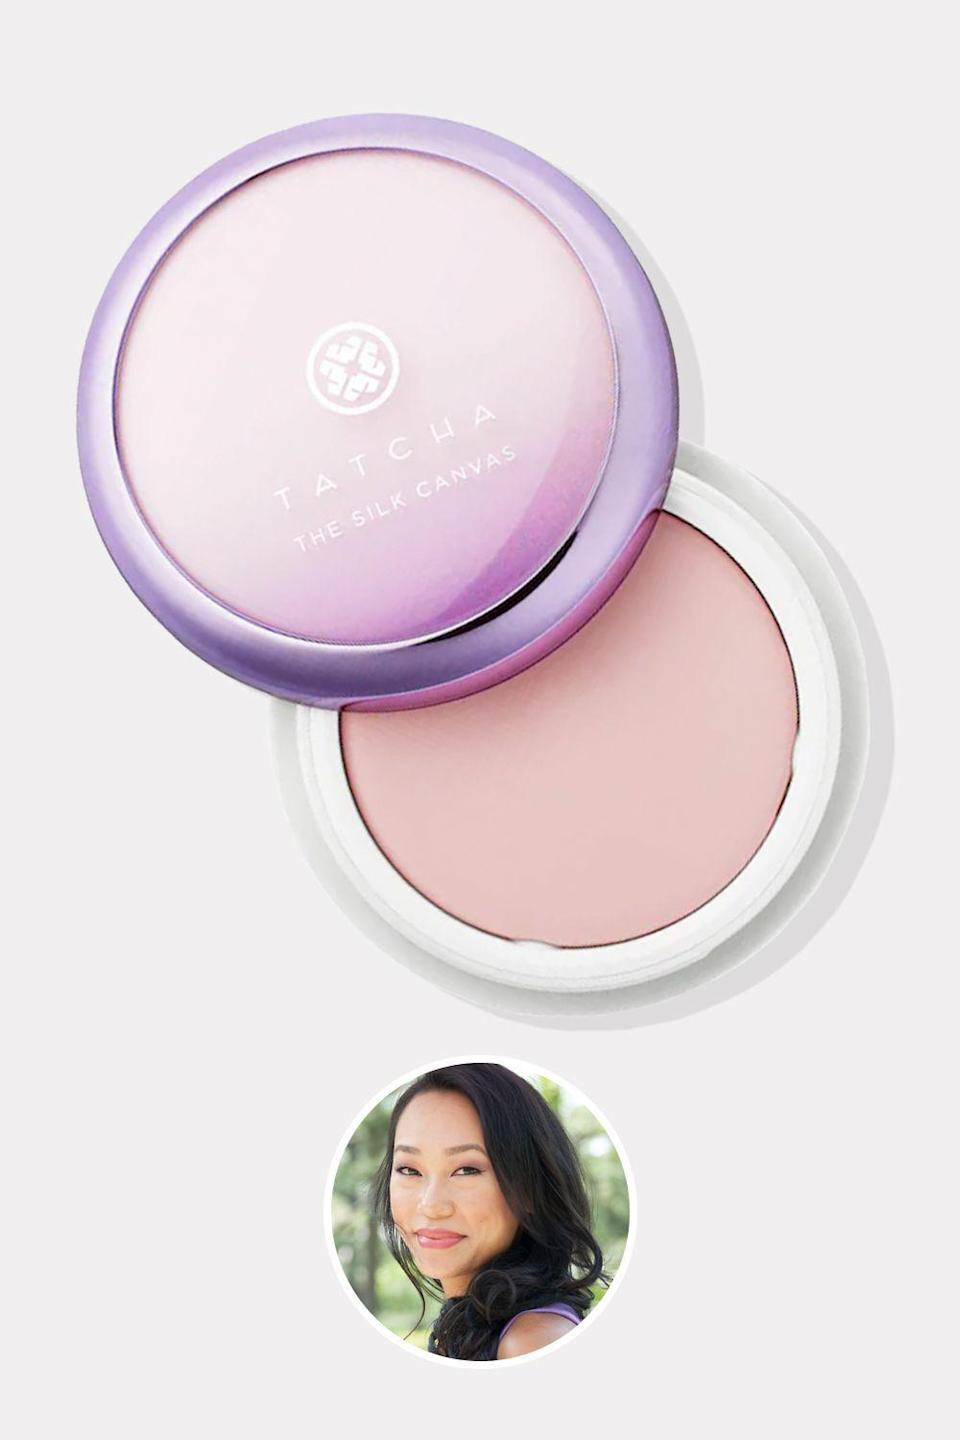 """<p><strong>Tatcha</strong></p><p>sephora.com</p><p><strong>$52.00</strong></p><p><a href=""""https://go.redirectingat.com?id=74968X1596630&url=https%3A%2F%2Fwww.sephora.com%2Fproduct%2Fthe-silk-canvas-P428661&sref=https%3A%2F%2Fwww.oprahdaily.com%2Fbeauty%2Fskin-makeup%2Fg36454382%2Fasian-beauty-brands%2F"""" rel=""""nofollow noopener"""" target=""""_blank"""" data-ylk=""""slk:Shop Now"""" class=""""link rapid-noclick-resp"""">Shop Now</a></p><p>A chance encounter with a geisha during a trip to Kyoto inspired Vicky Tsai to bring the Japanese notion of simplicity and quality to the American beauty consumer, and this silky primer is one of the brand's best-loved products. At the heart of every formula is a proprietary blend of three Japanese superfoods: green tea, rice, and algae. But an even more important thread woven throughout the fabric of Tatcha is a commitment to philanthropy: The brand has partnered with <a href=""""https://www.roomtoread.org/"""" rel=""""nofollow noopener"""" target=""""_blank"""" data-ylk=""""slk:Room to Read"""" class=""""link rapid-noclick-resp"""">Room to Read</a> to help fund the education of young girls in Asia and Africa. </p>"""